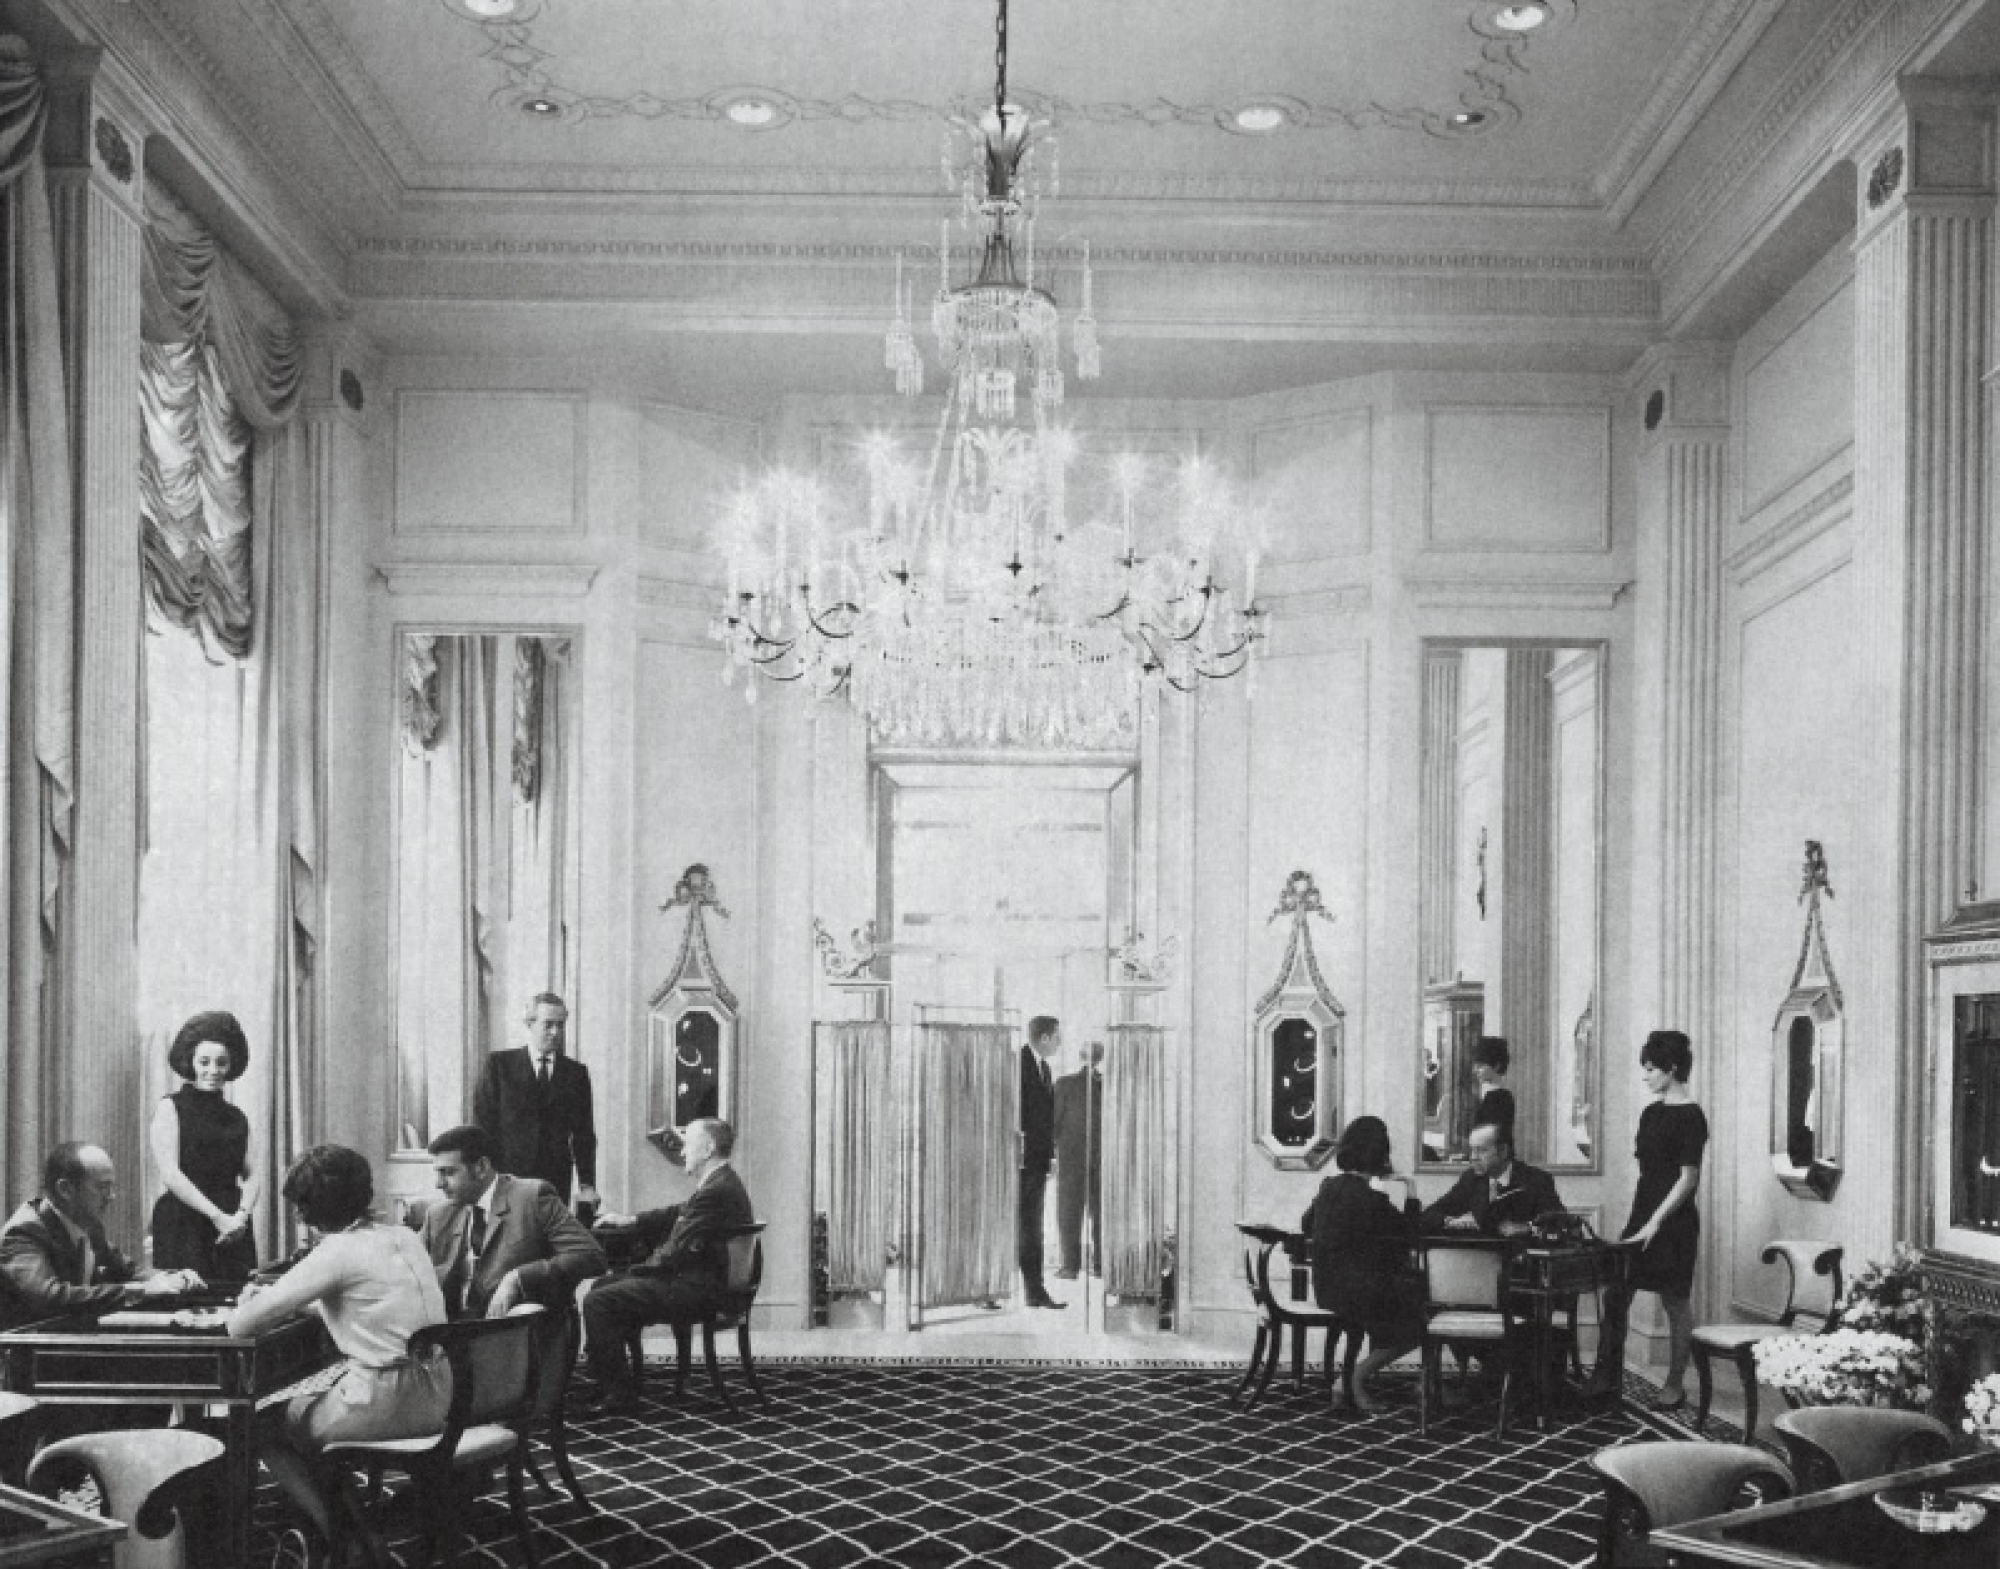 The majestic chandelier in the Harry Winston salon on First Avenue was an inspiration